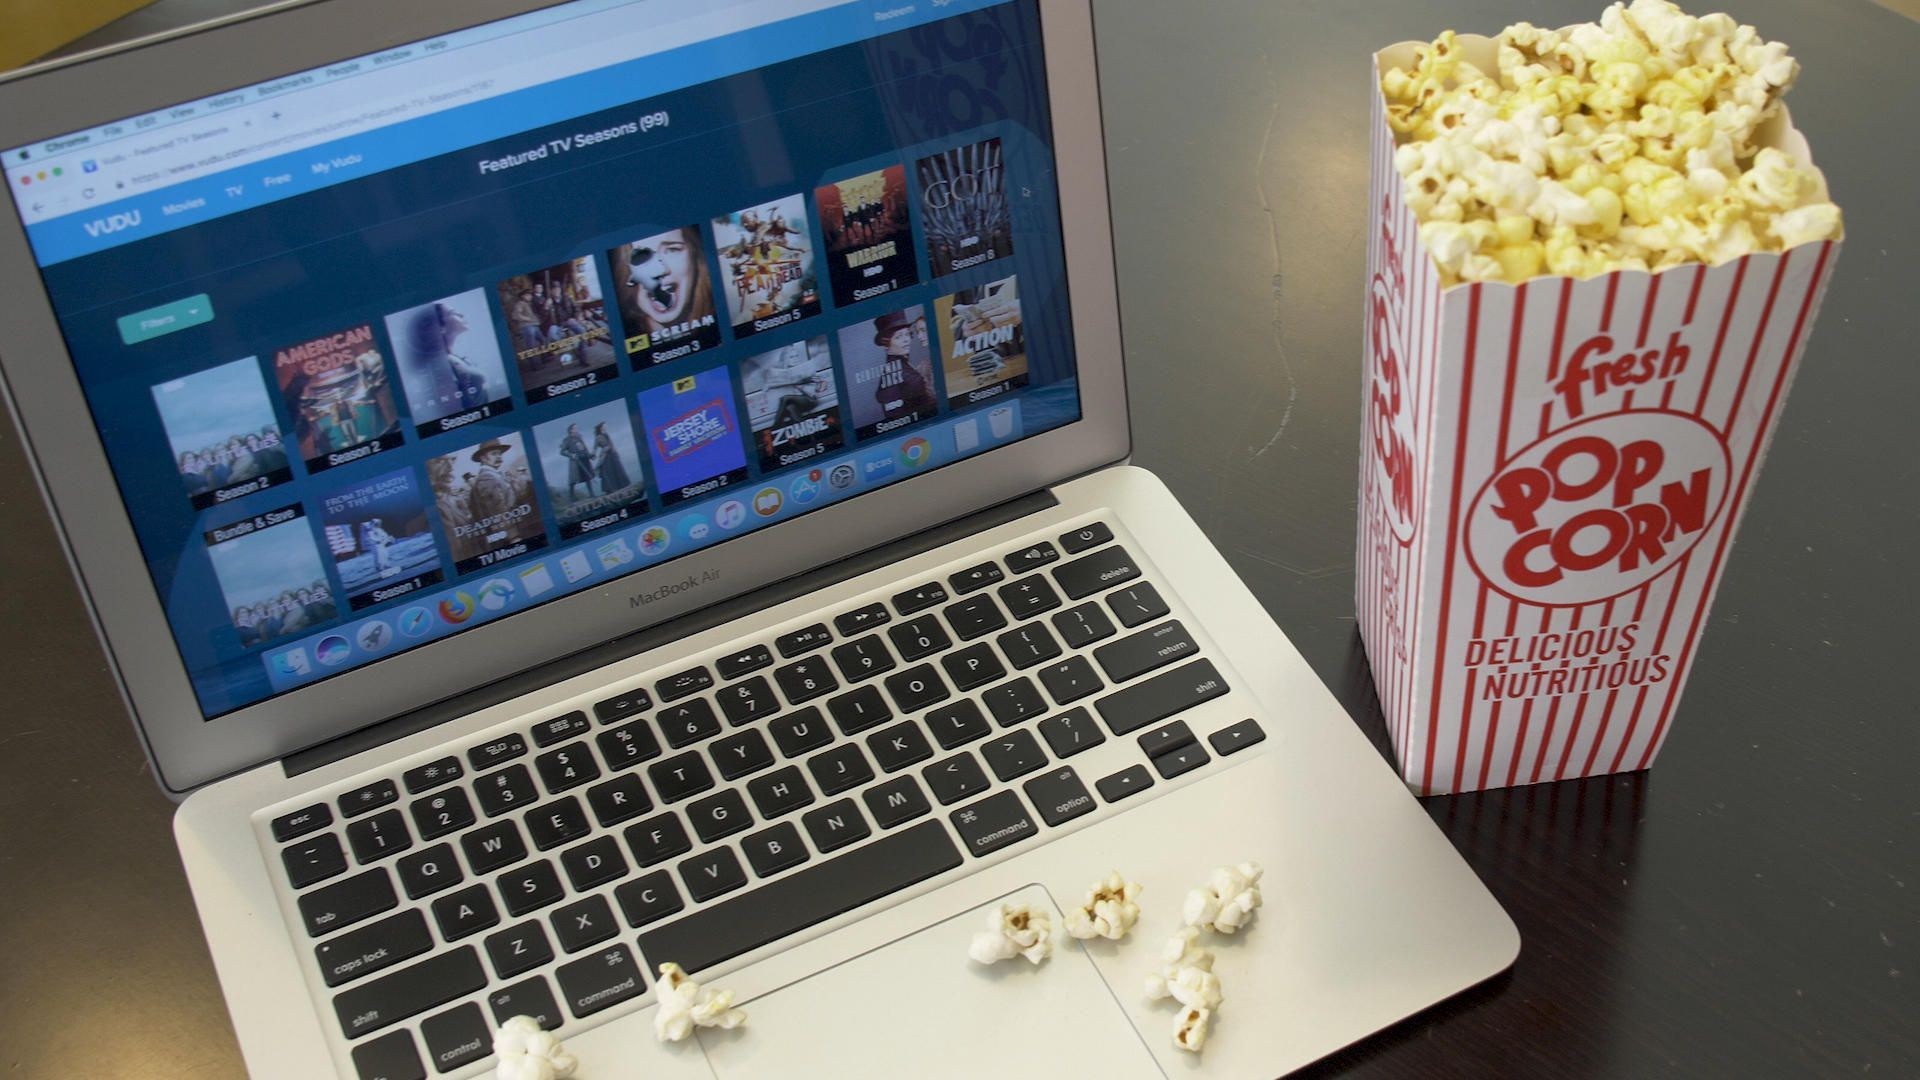 10 best free movie and TV streaming services (With images